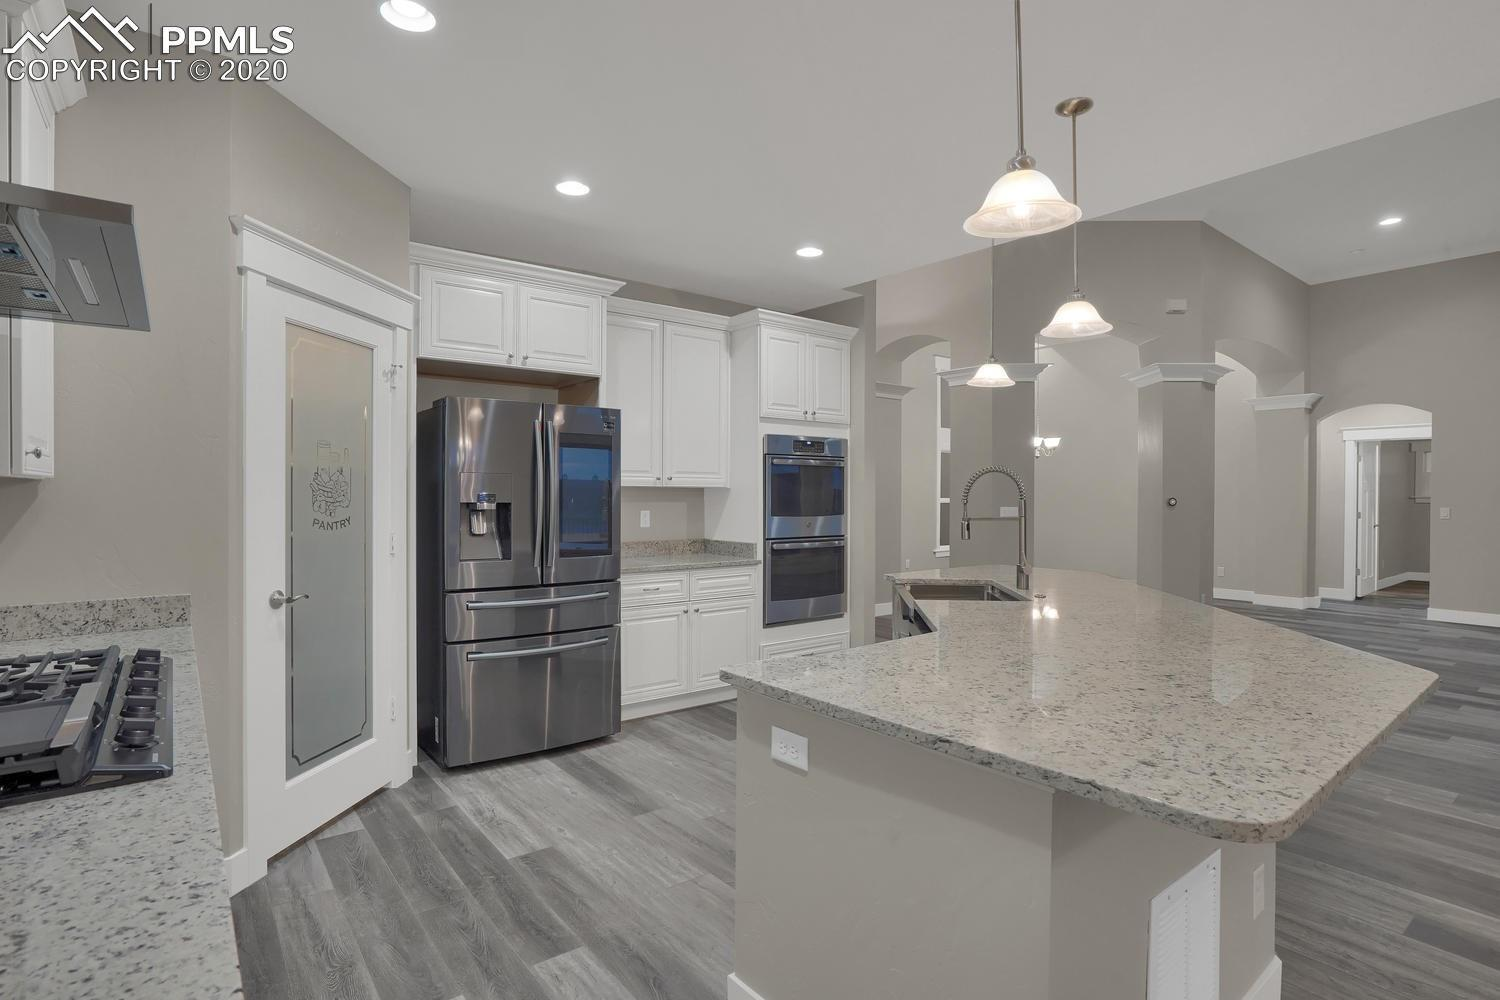 Kitchen featured in the Spruce By Wildernest in Colorado Springs, CO